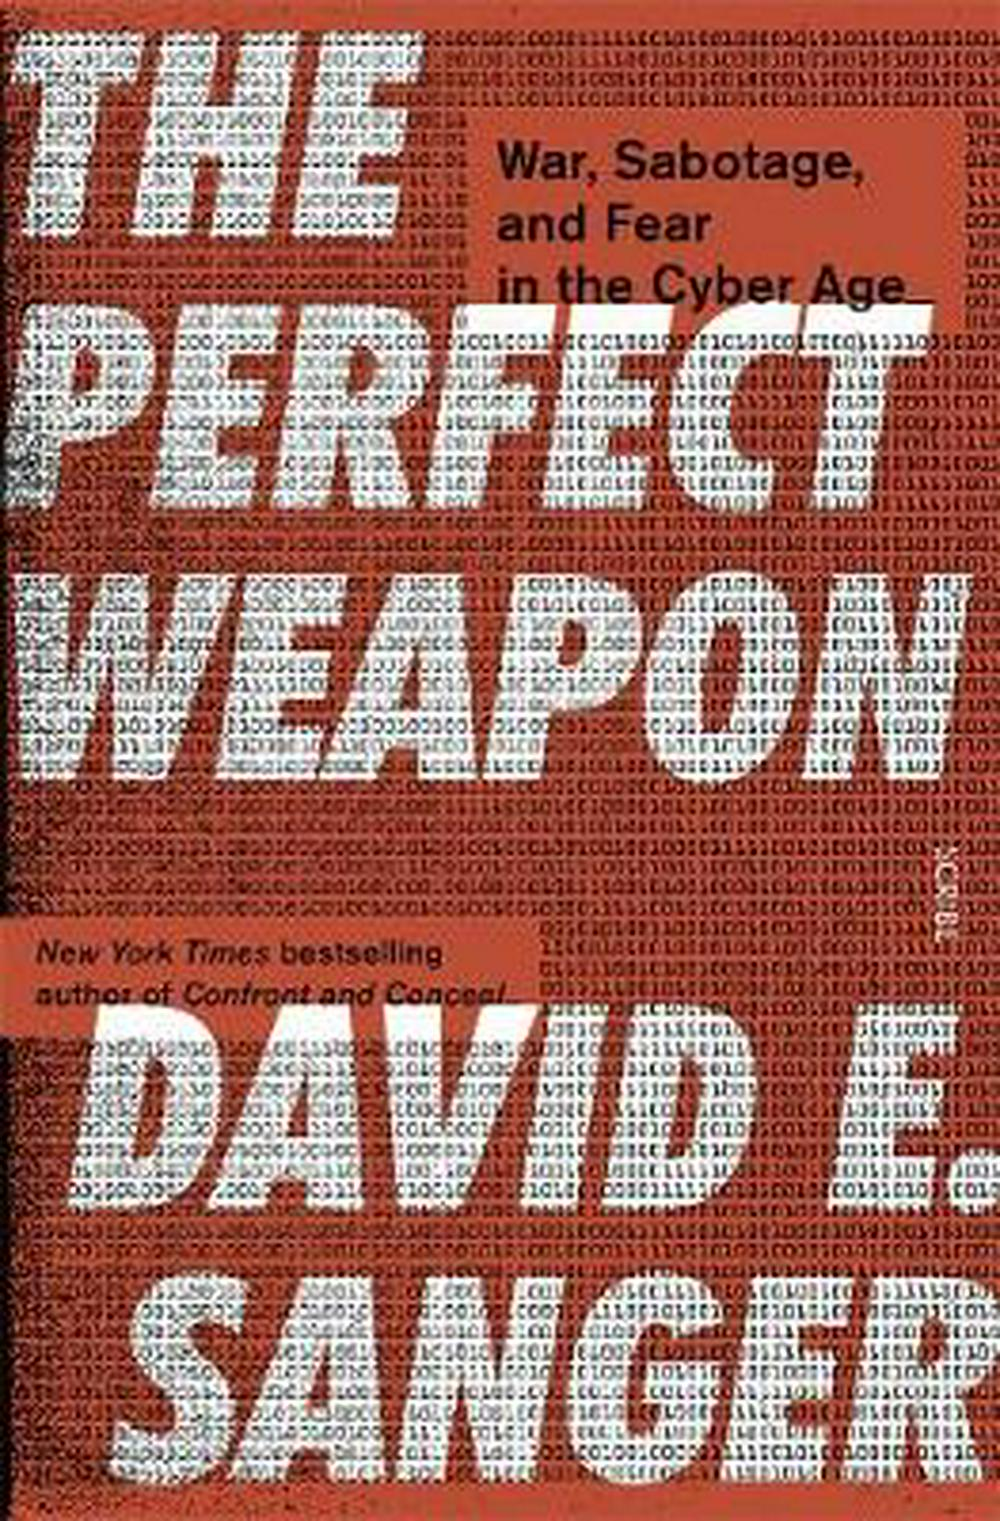 Perfect WeaponWar, Sabotage, and Fear in the Cyber Age The